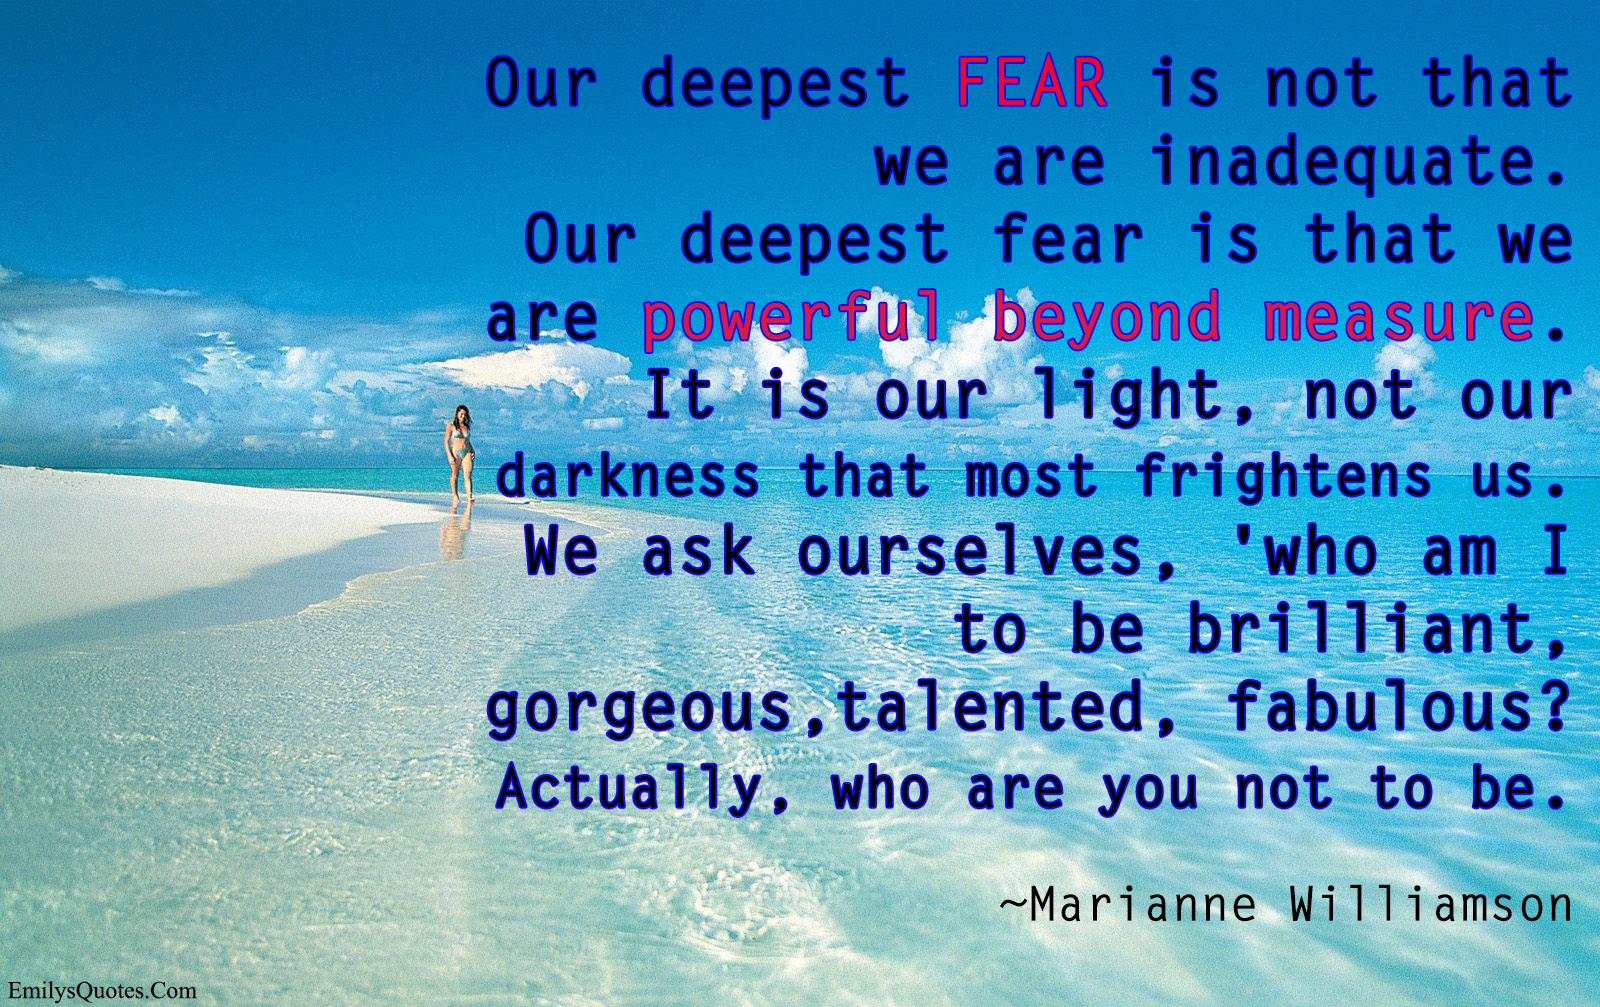 [Image]Author Marianne Williamson On Fear